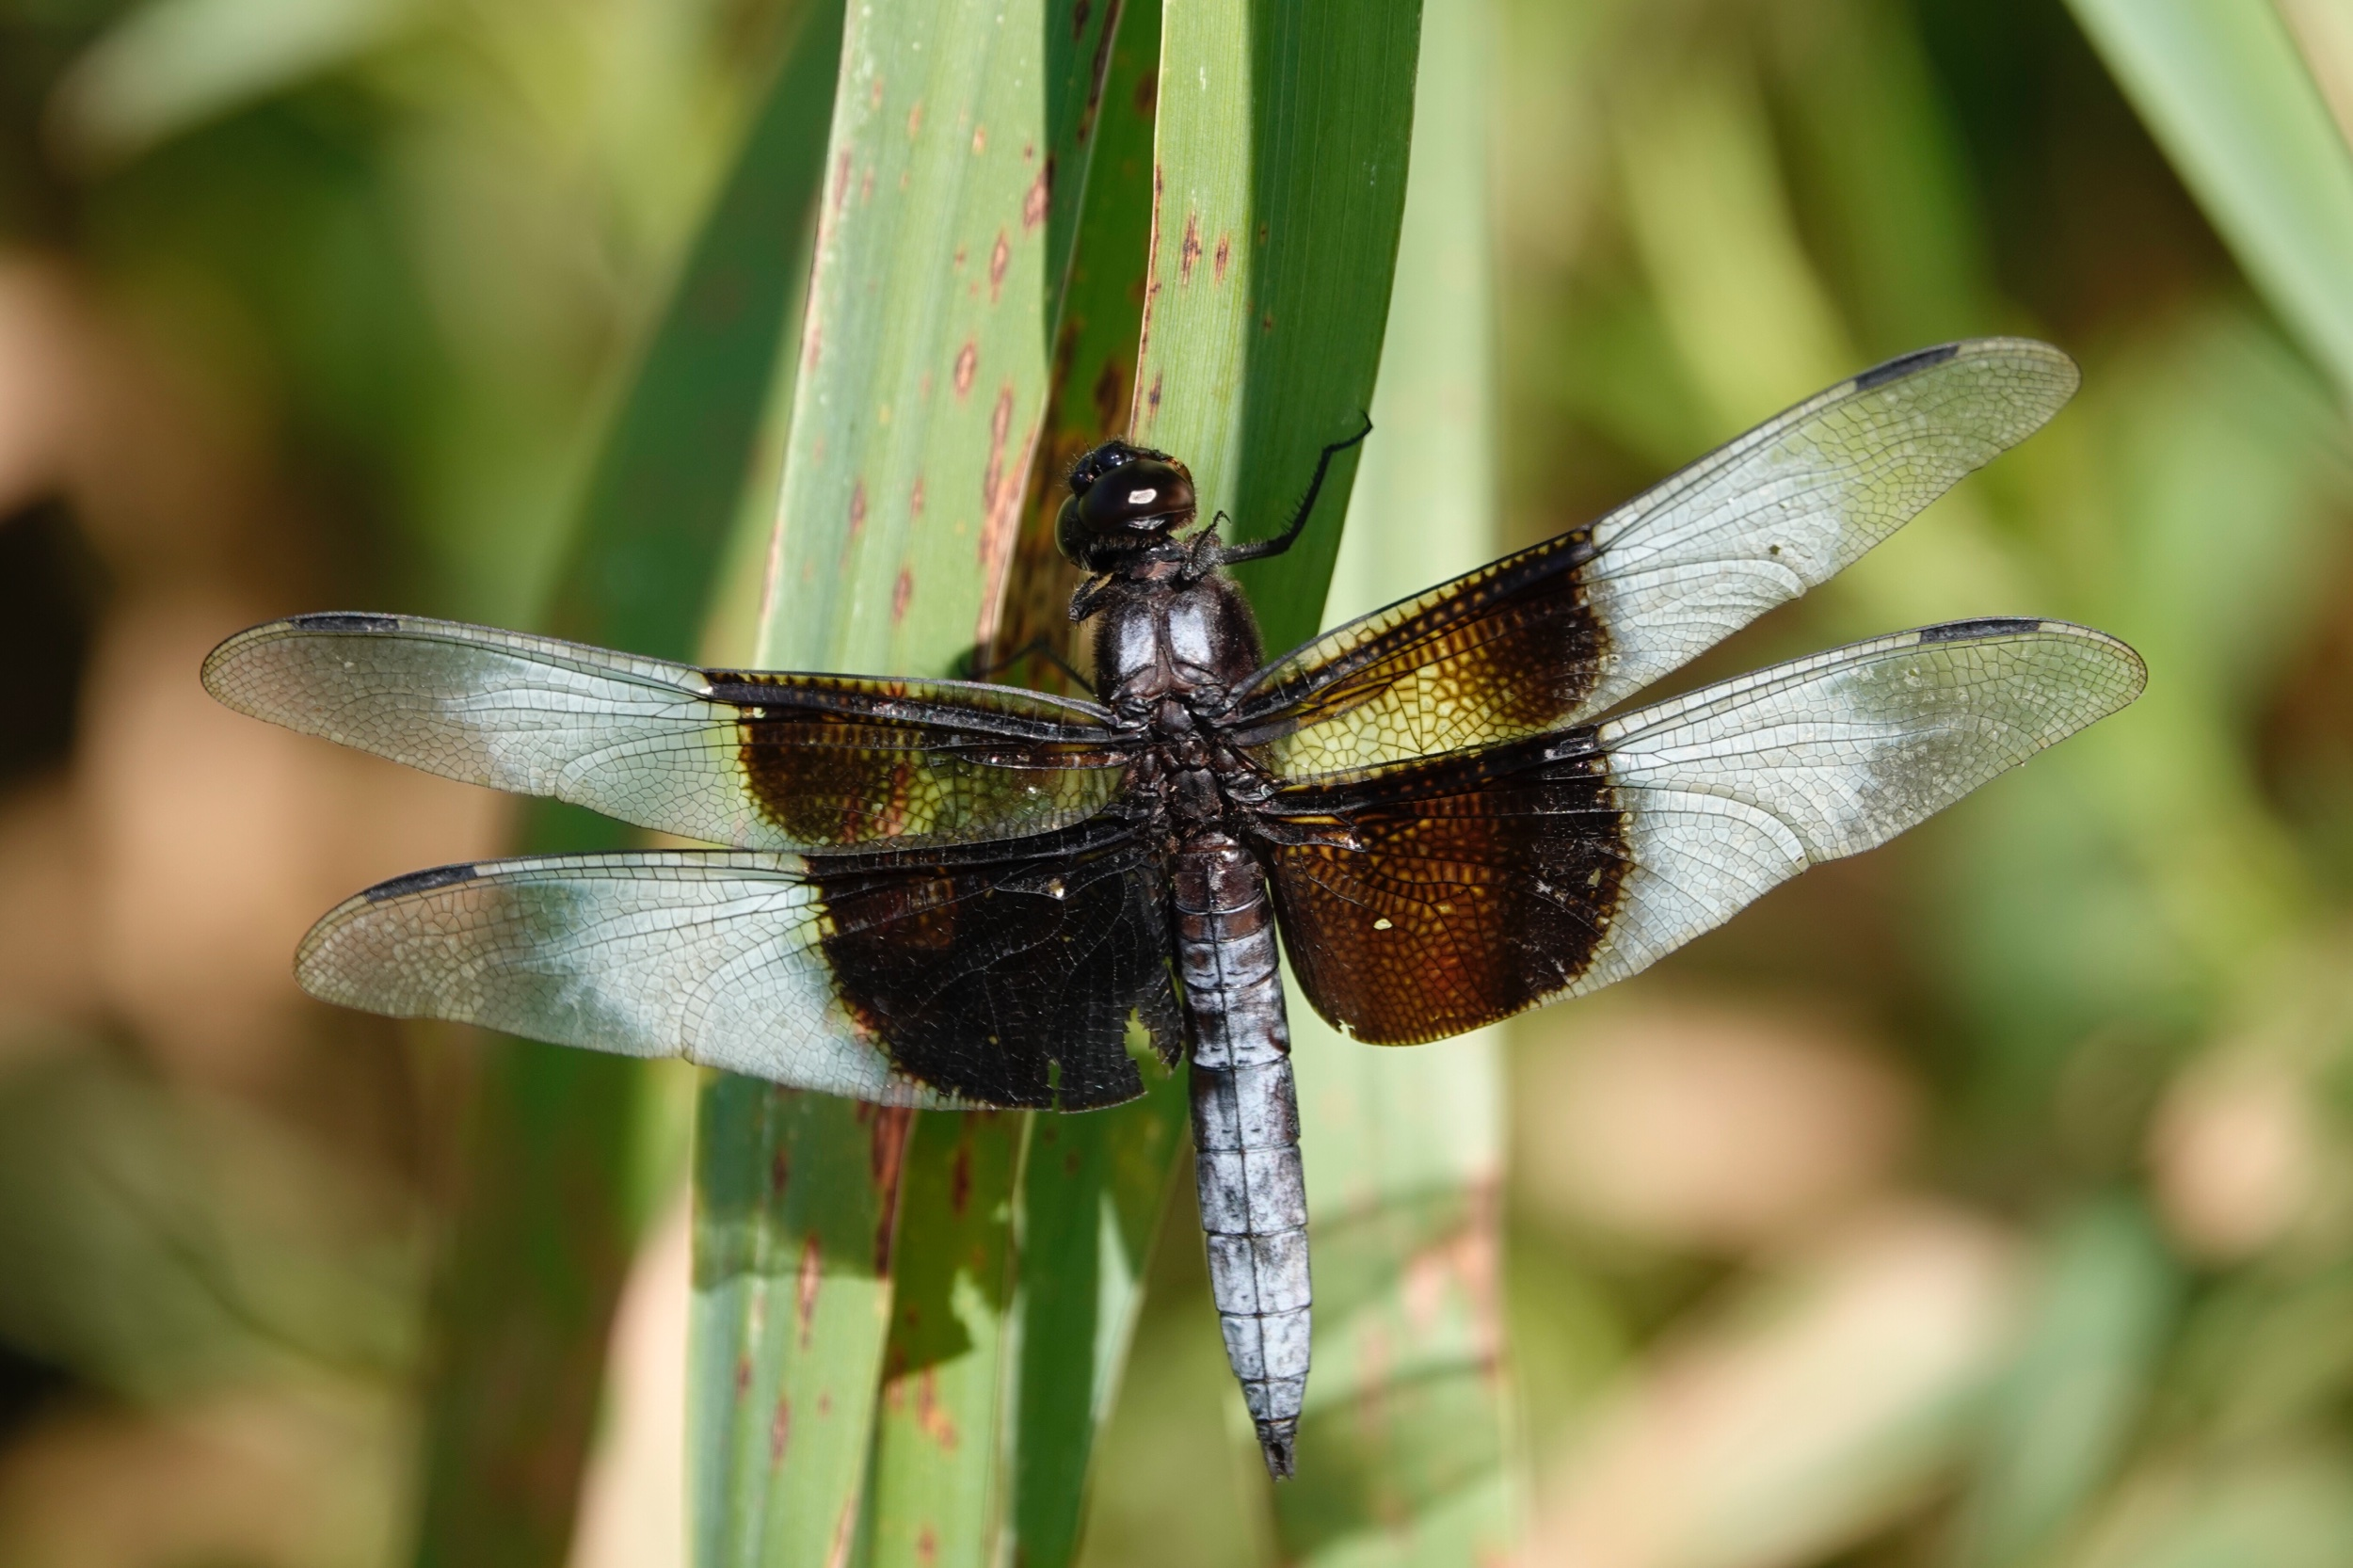 The species name of the widow skimmer dragonfly means sorrowful as its wings seem to be draped in mourning crepe. Photo by Al Batt